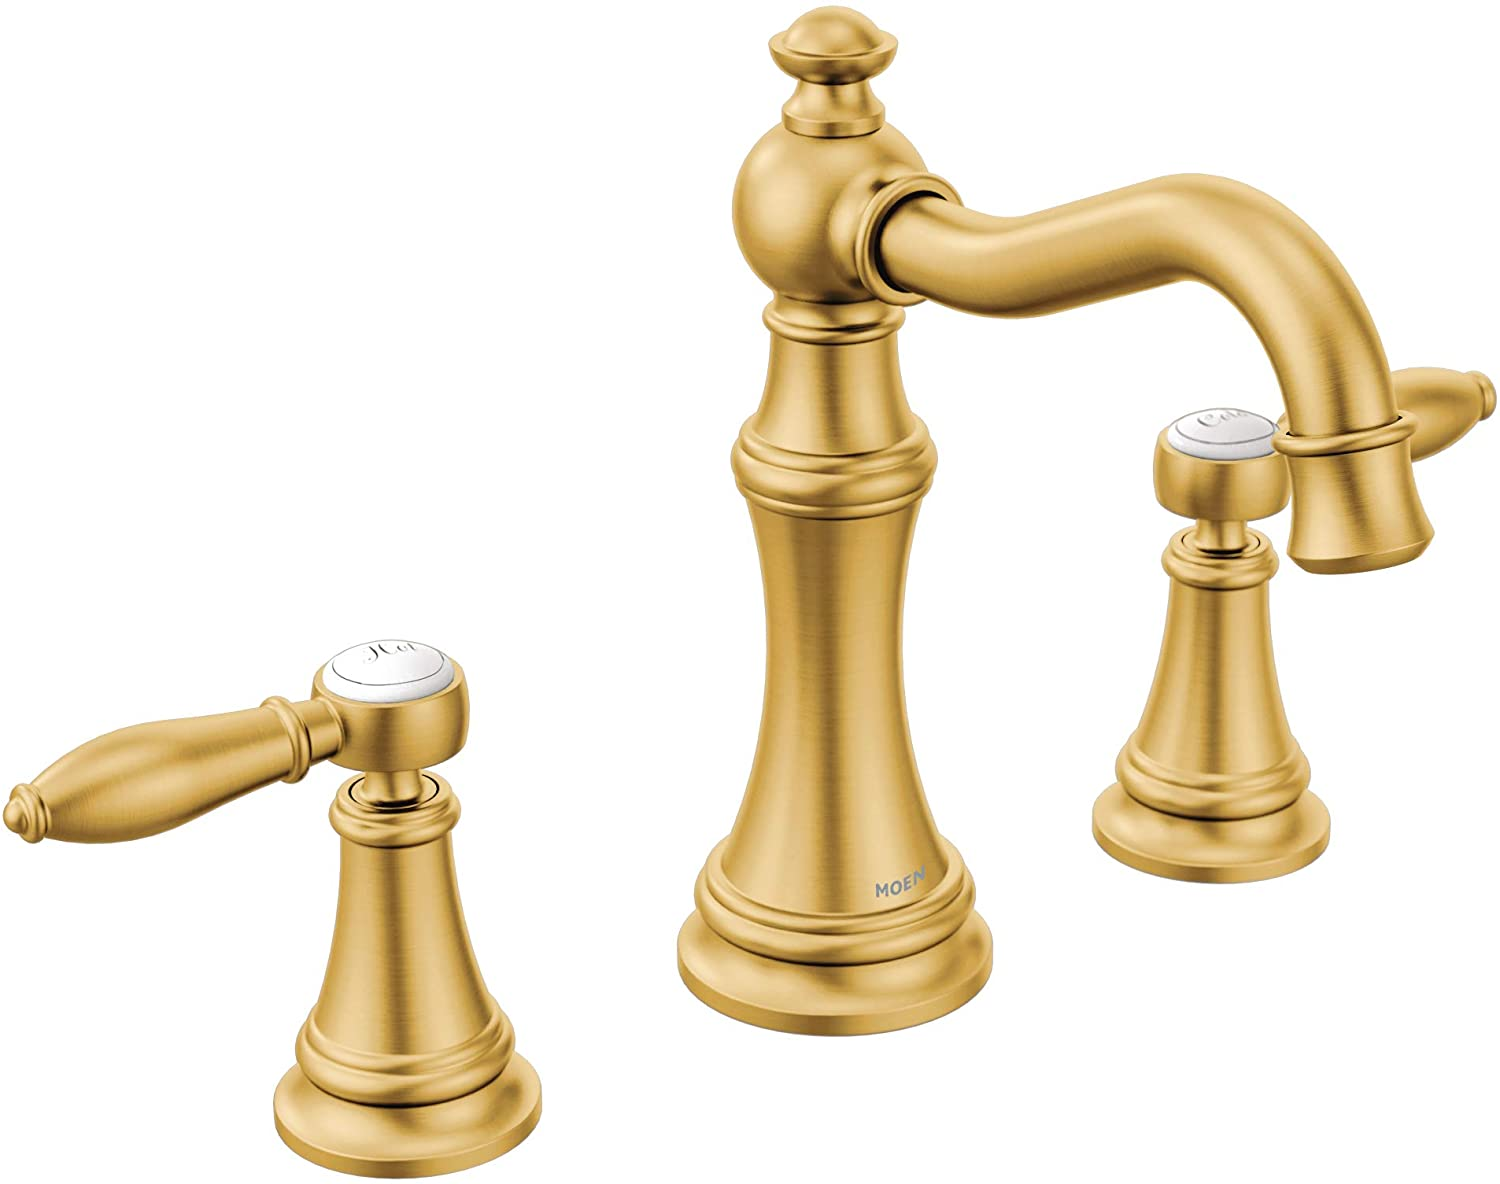 Moen Ts42108bg Weymouth Two Handle Lever Handle Bathroom Faucet Trim Kit Valve Required Brushed Gold Amazon Com